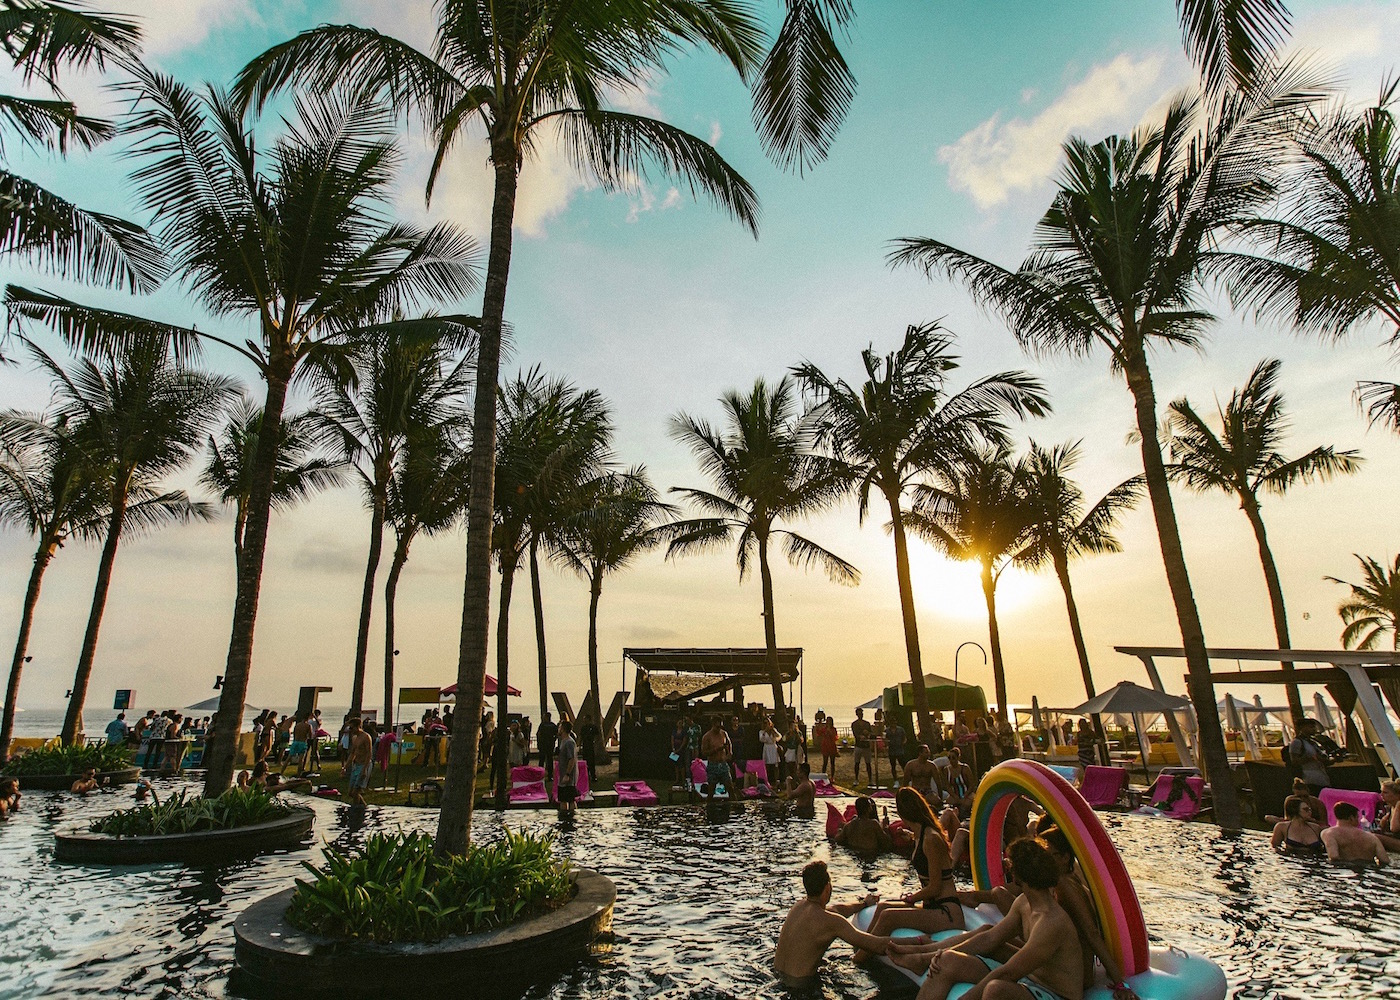 Sunset pool party with floaties at W Bali Seminyak resort